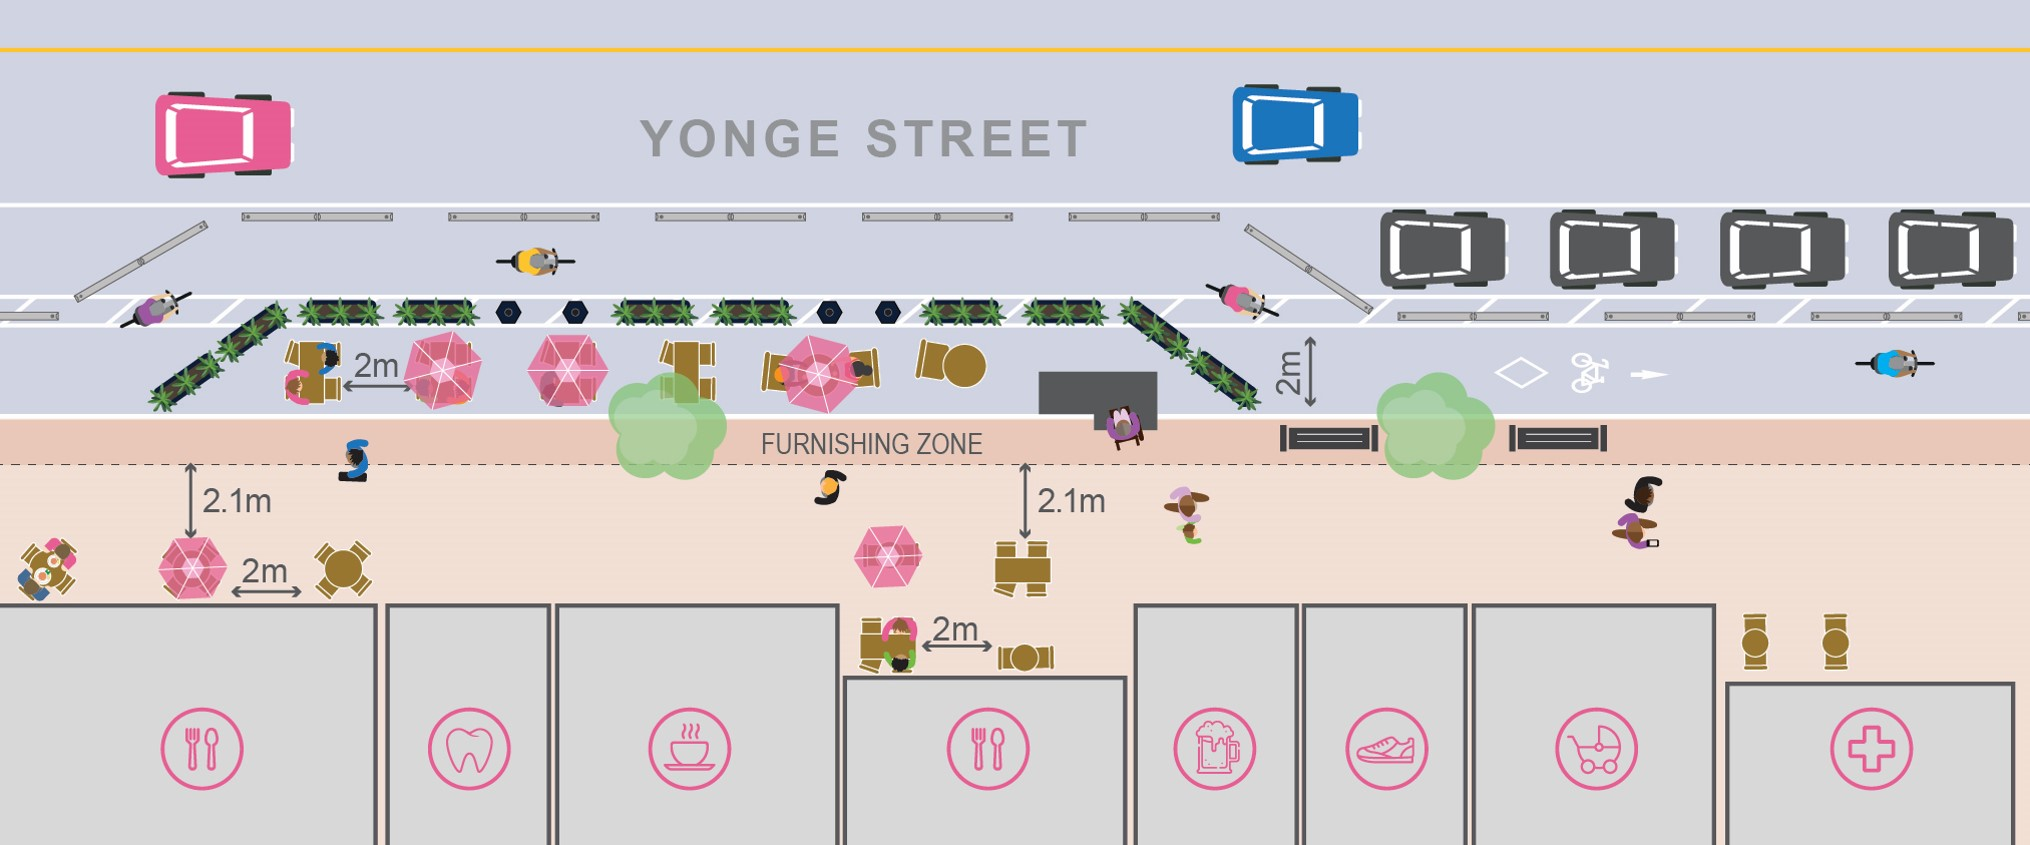 Diagram showing design elements of a complete street for Yonge Street which includes, shops, streetwalk, furnishing zone, cafe, planters, bike lane, flexi post seperation and lane for motor vehicles.